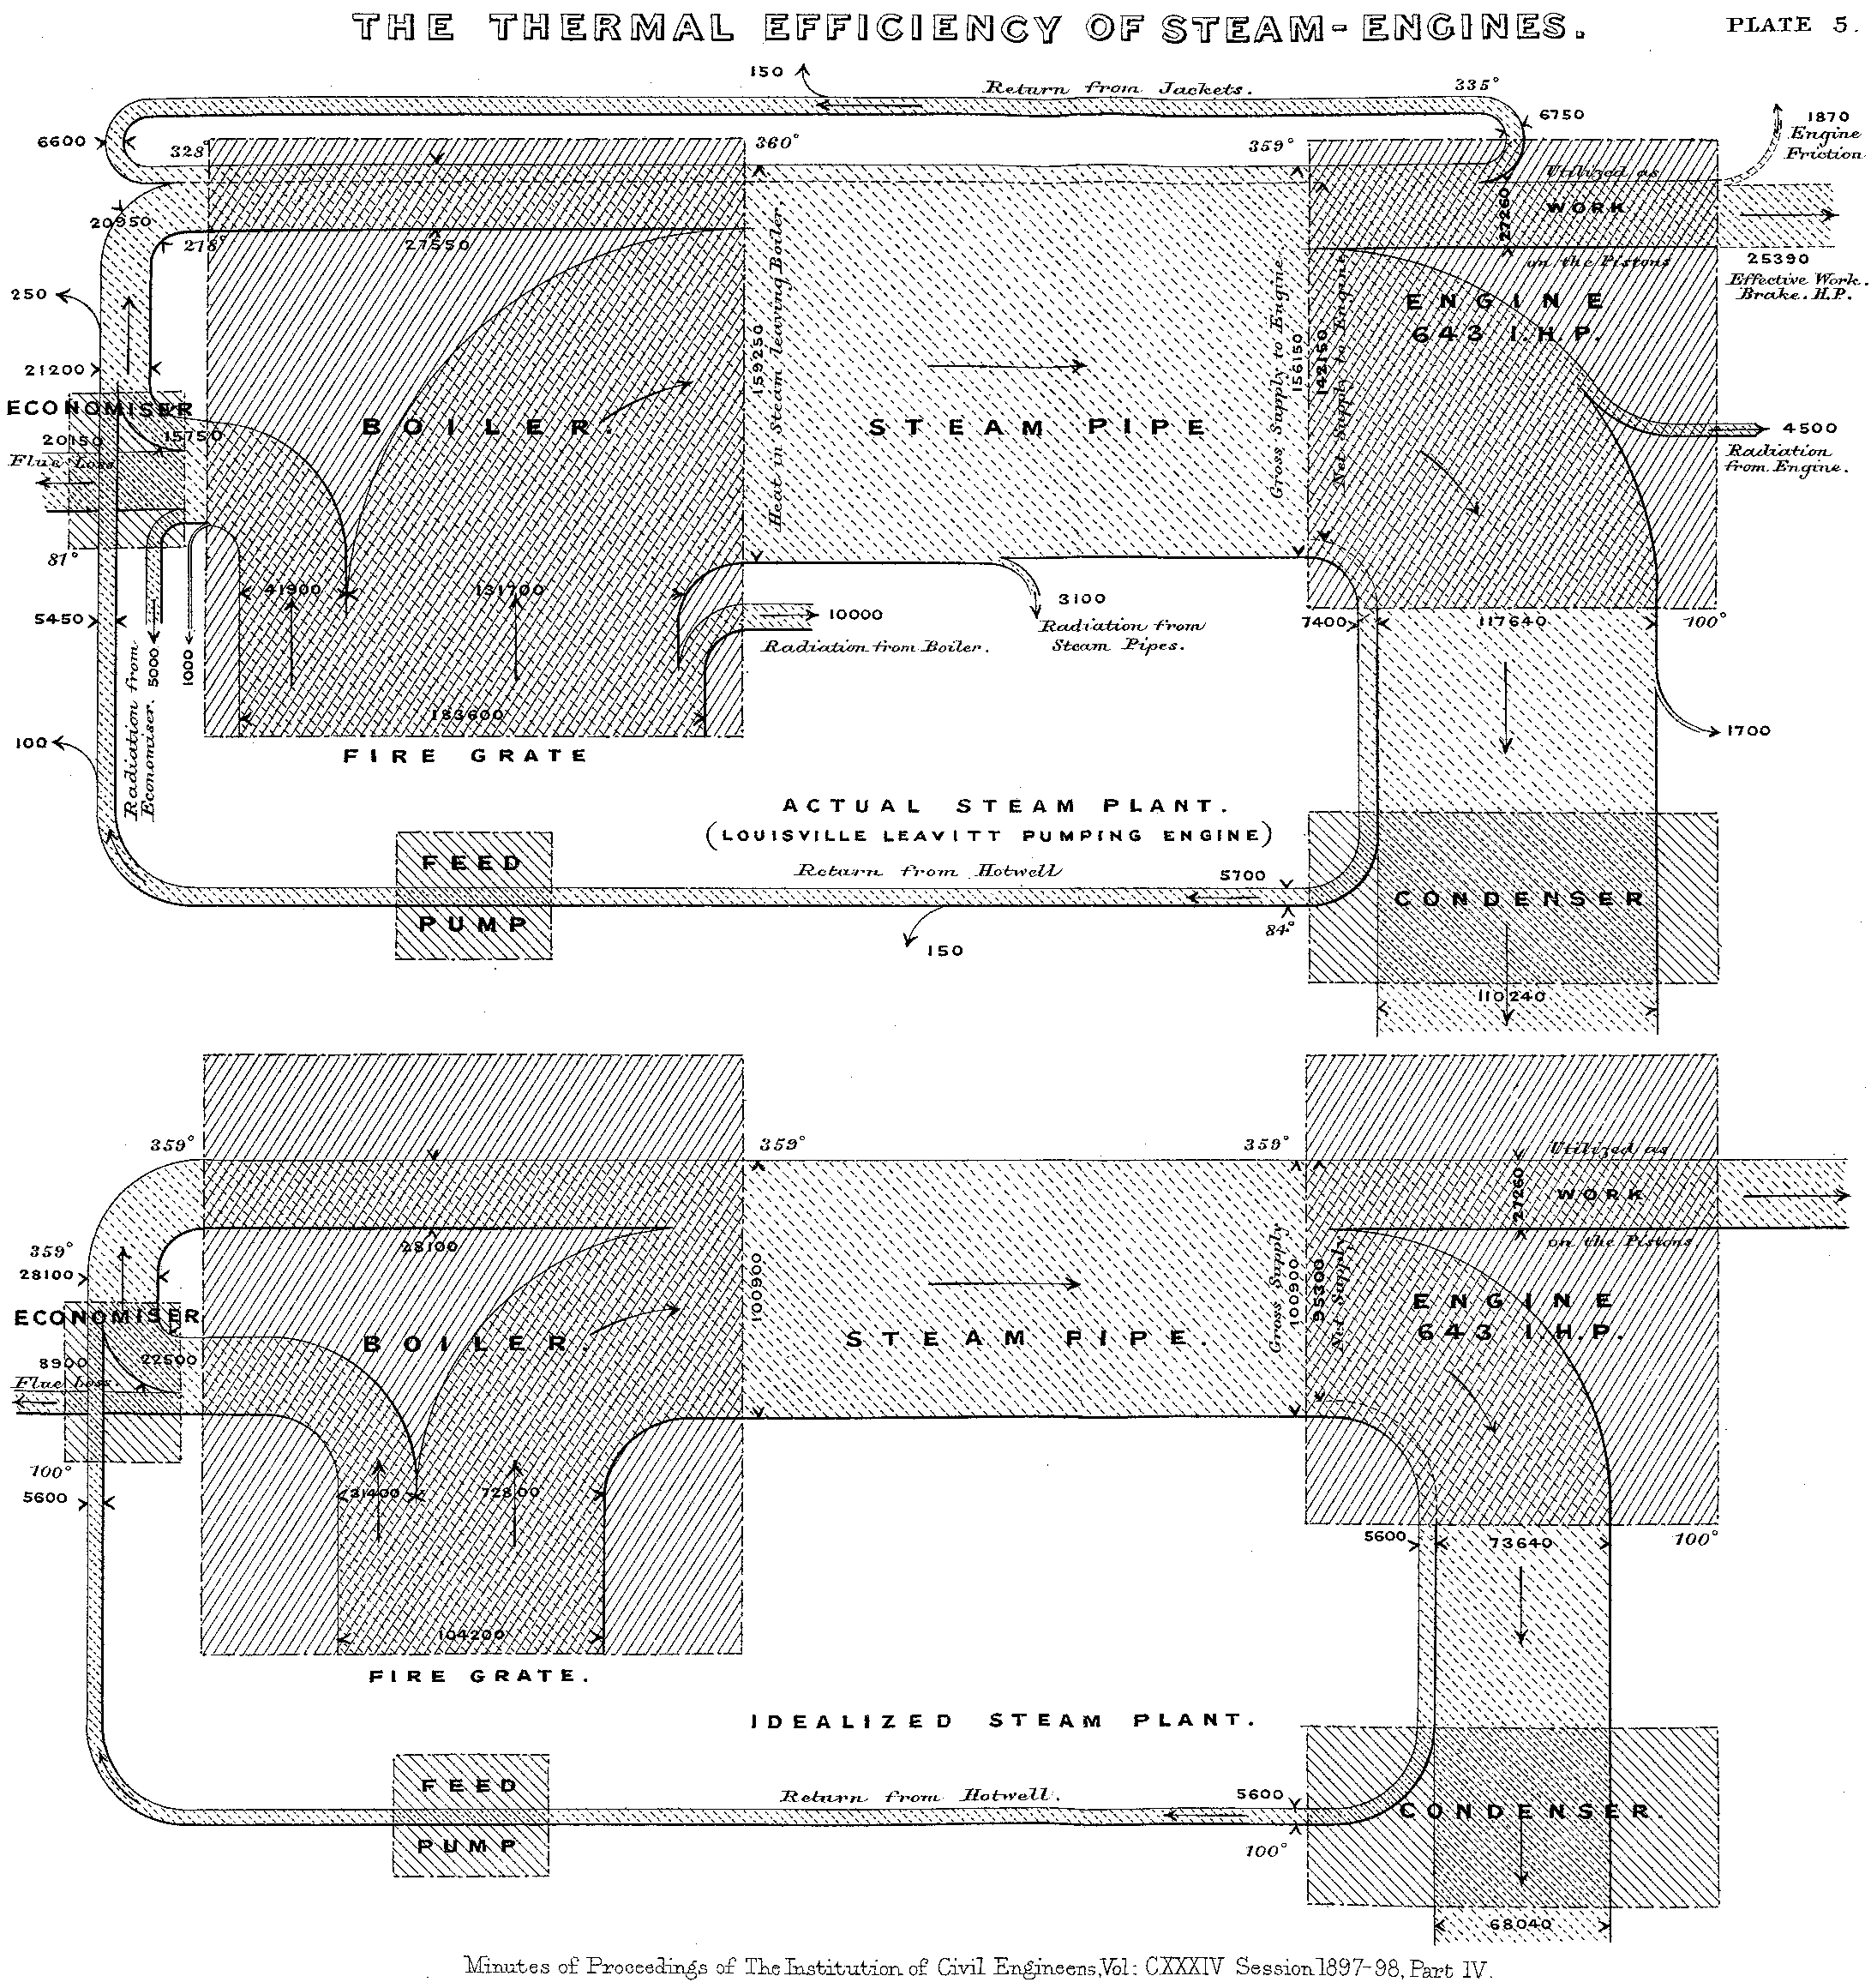 diagram of steam engine efficiency